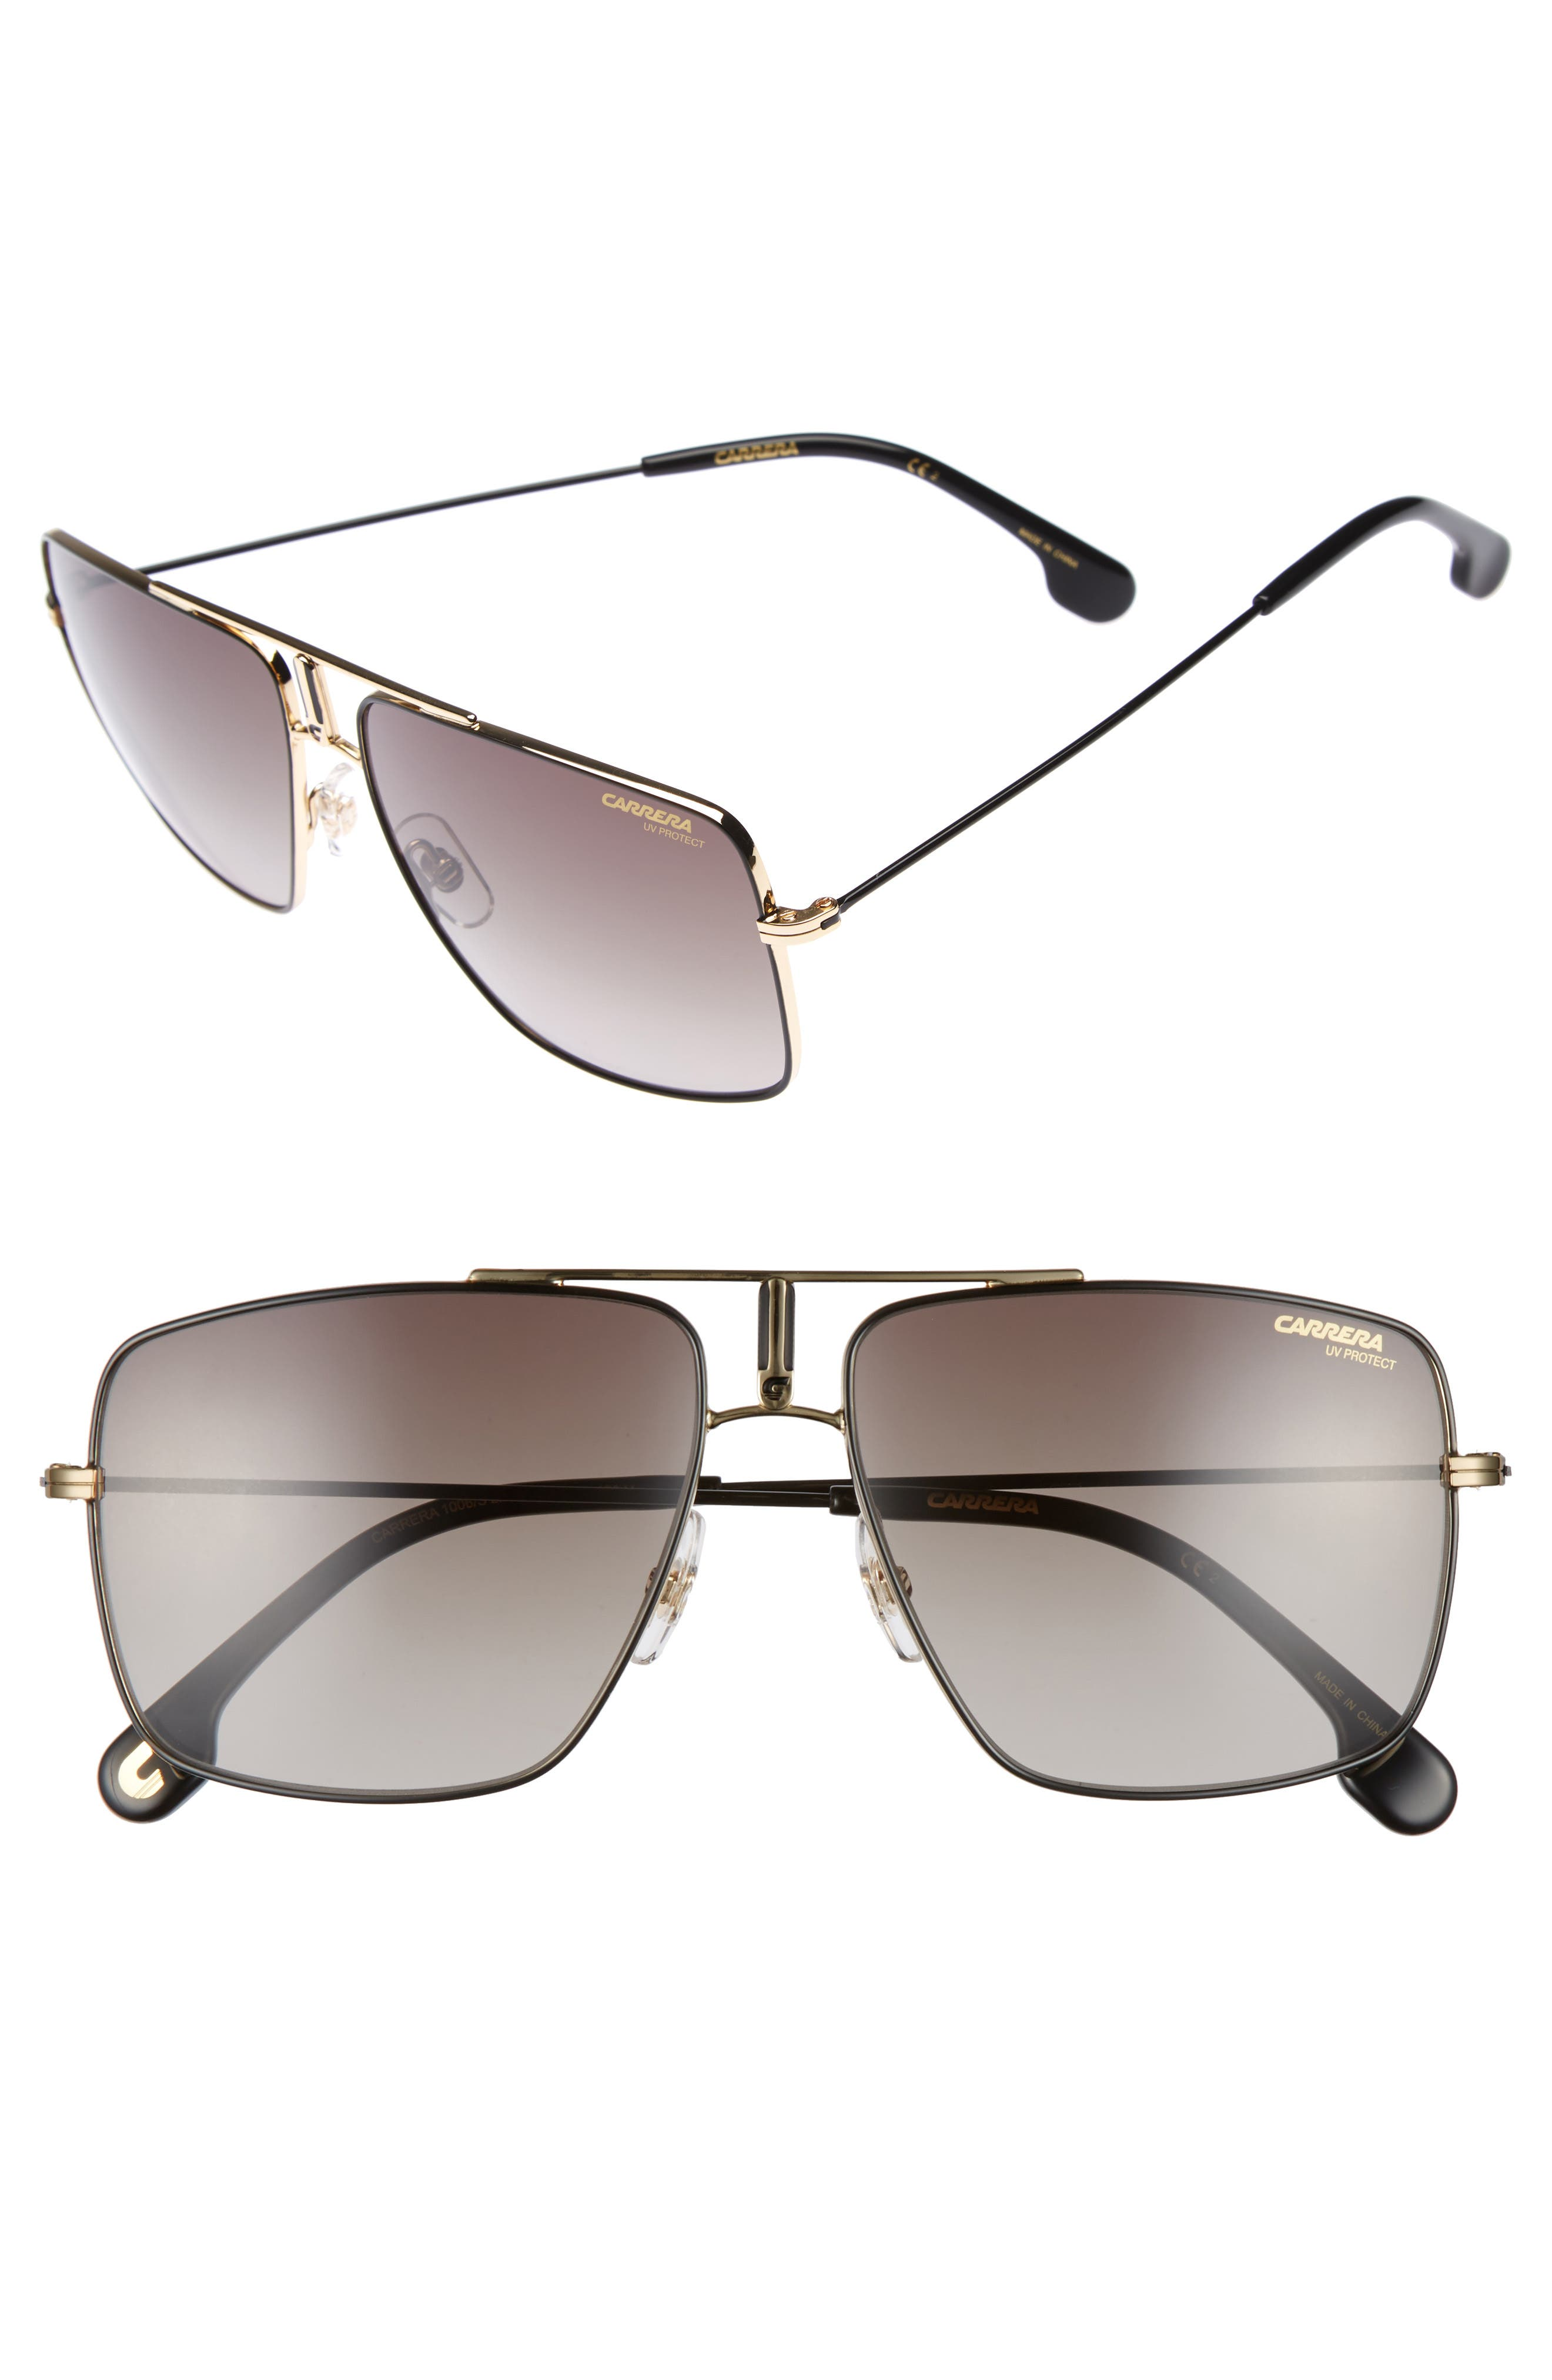 Carrera 60mm Aviator Sunglasses,                             Main thumbnail 1, color,                             Black Gold